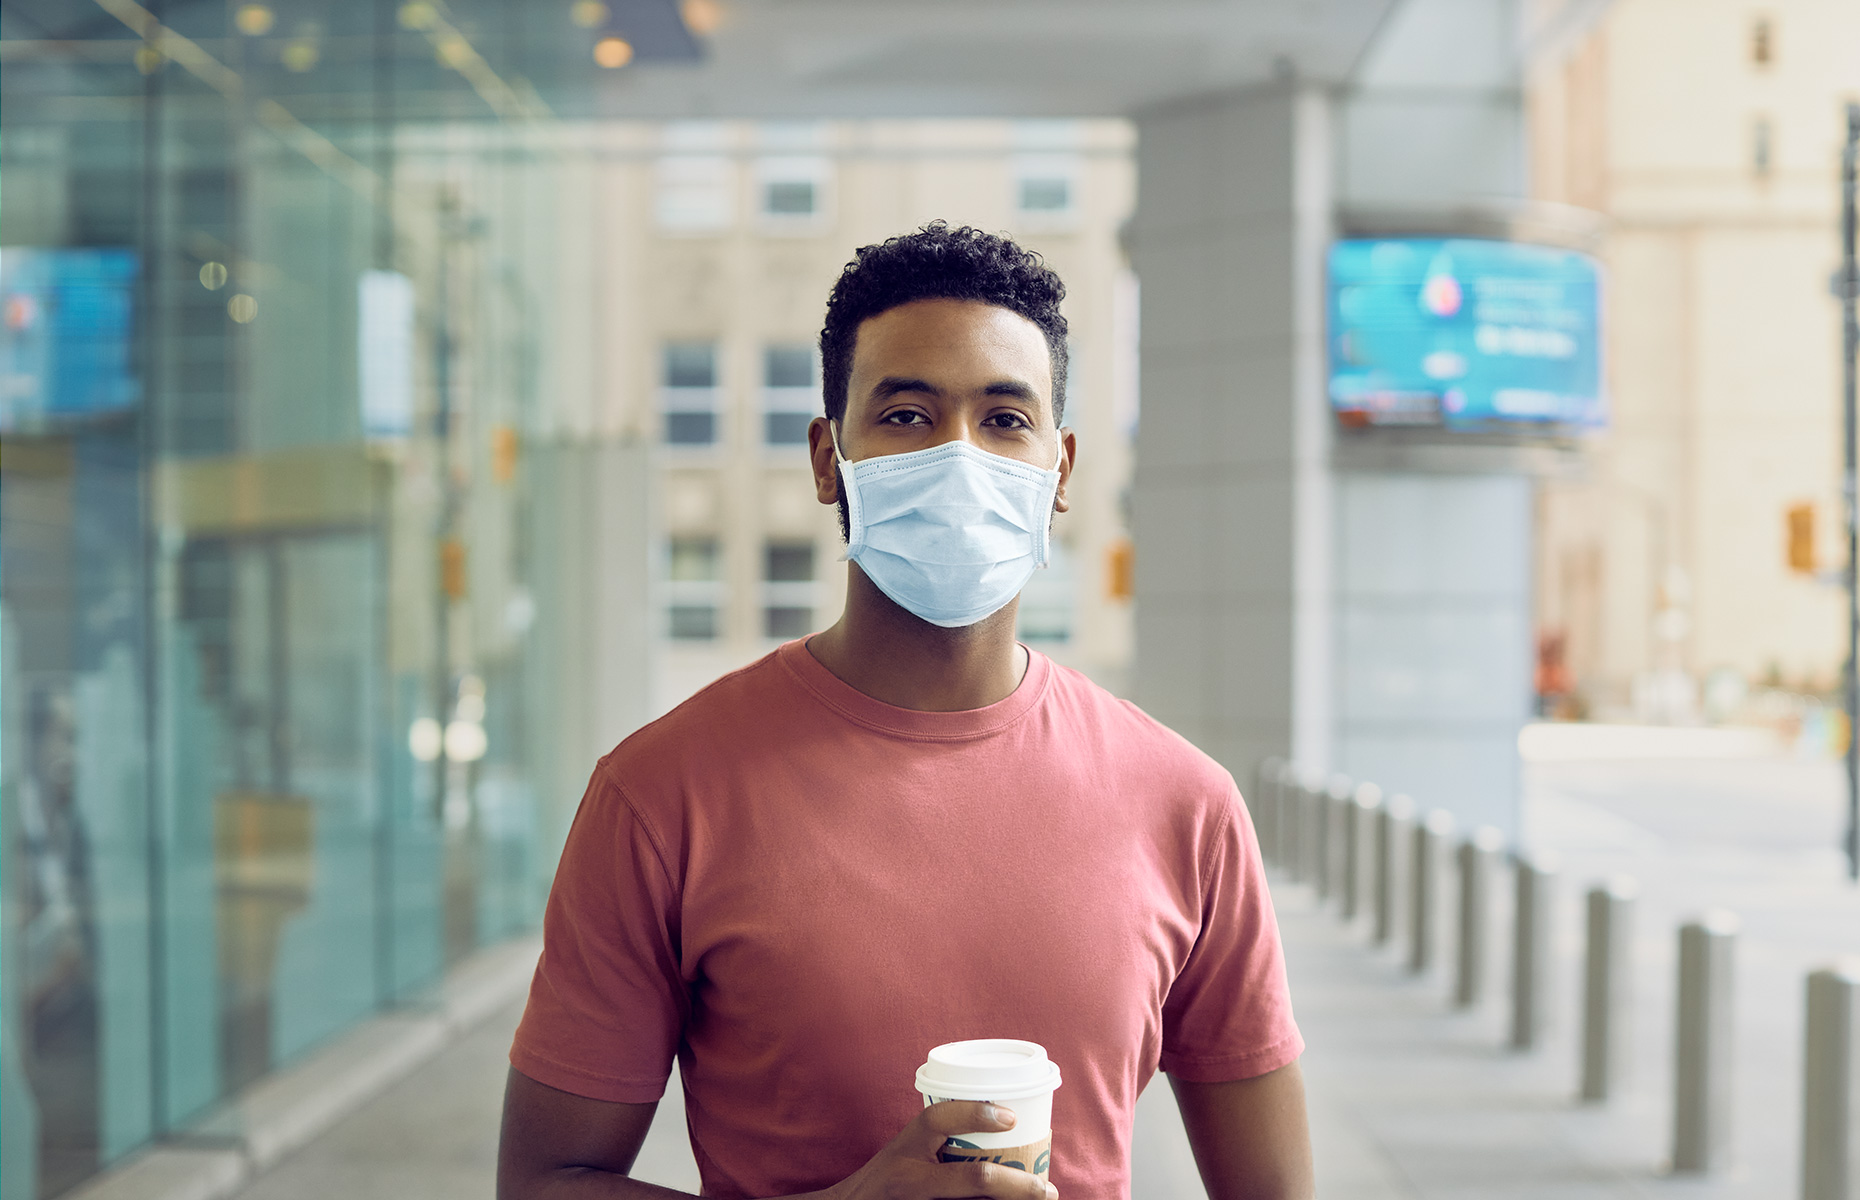 OttawaCommercialPhotographer_Matthew Liteplo, an Ottawa commercial photographer, took this stunning portrait image in Toronto, Ontario in August 2020 during the Pandemic. This portrait demonstrates matthew